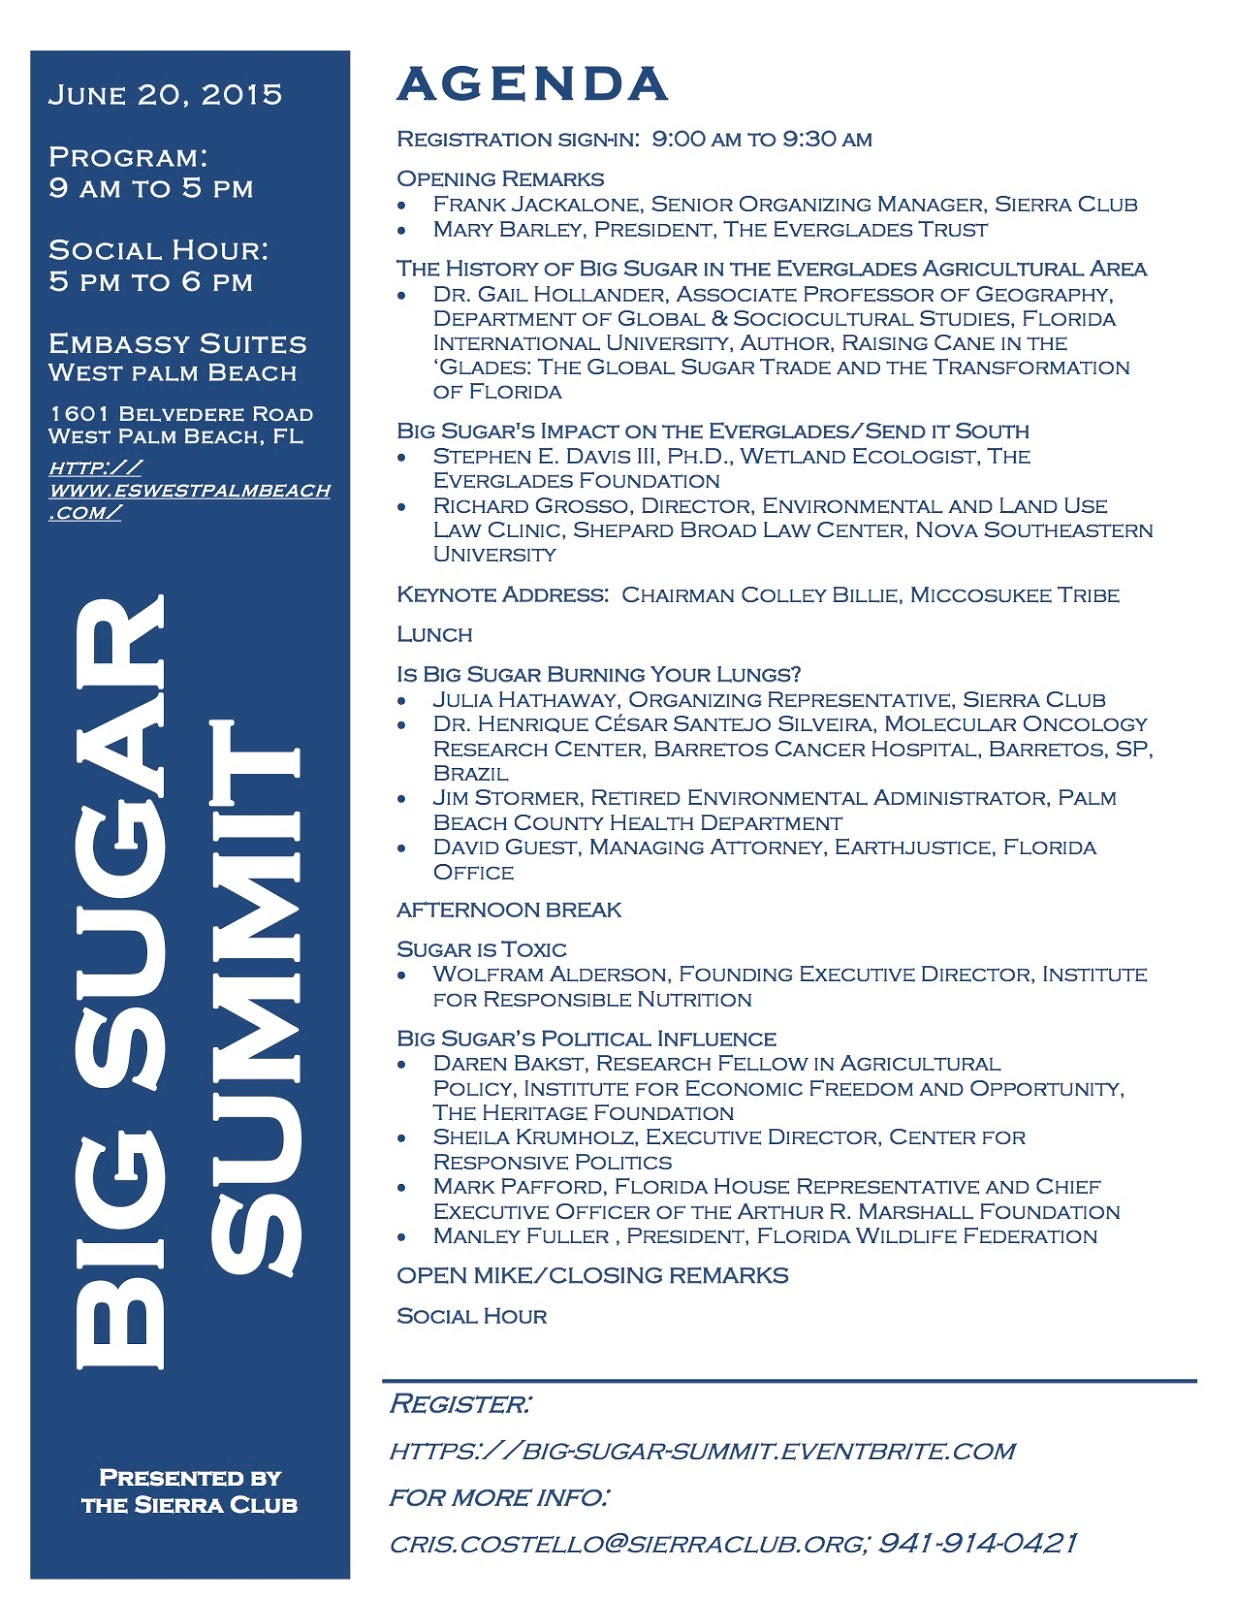 Big_Sugar_Summit_AGENDA_June_20_2015_FINAL_2.jpg